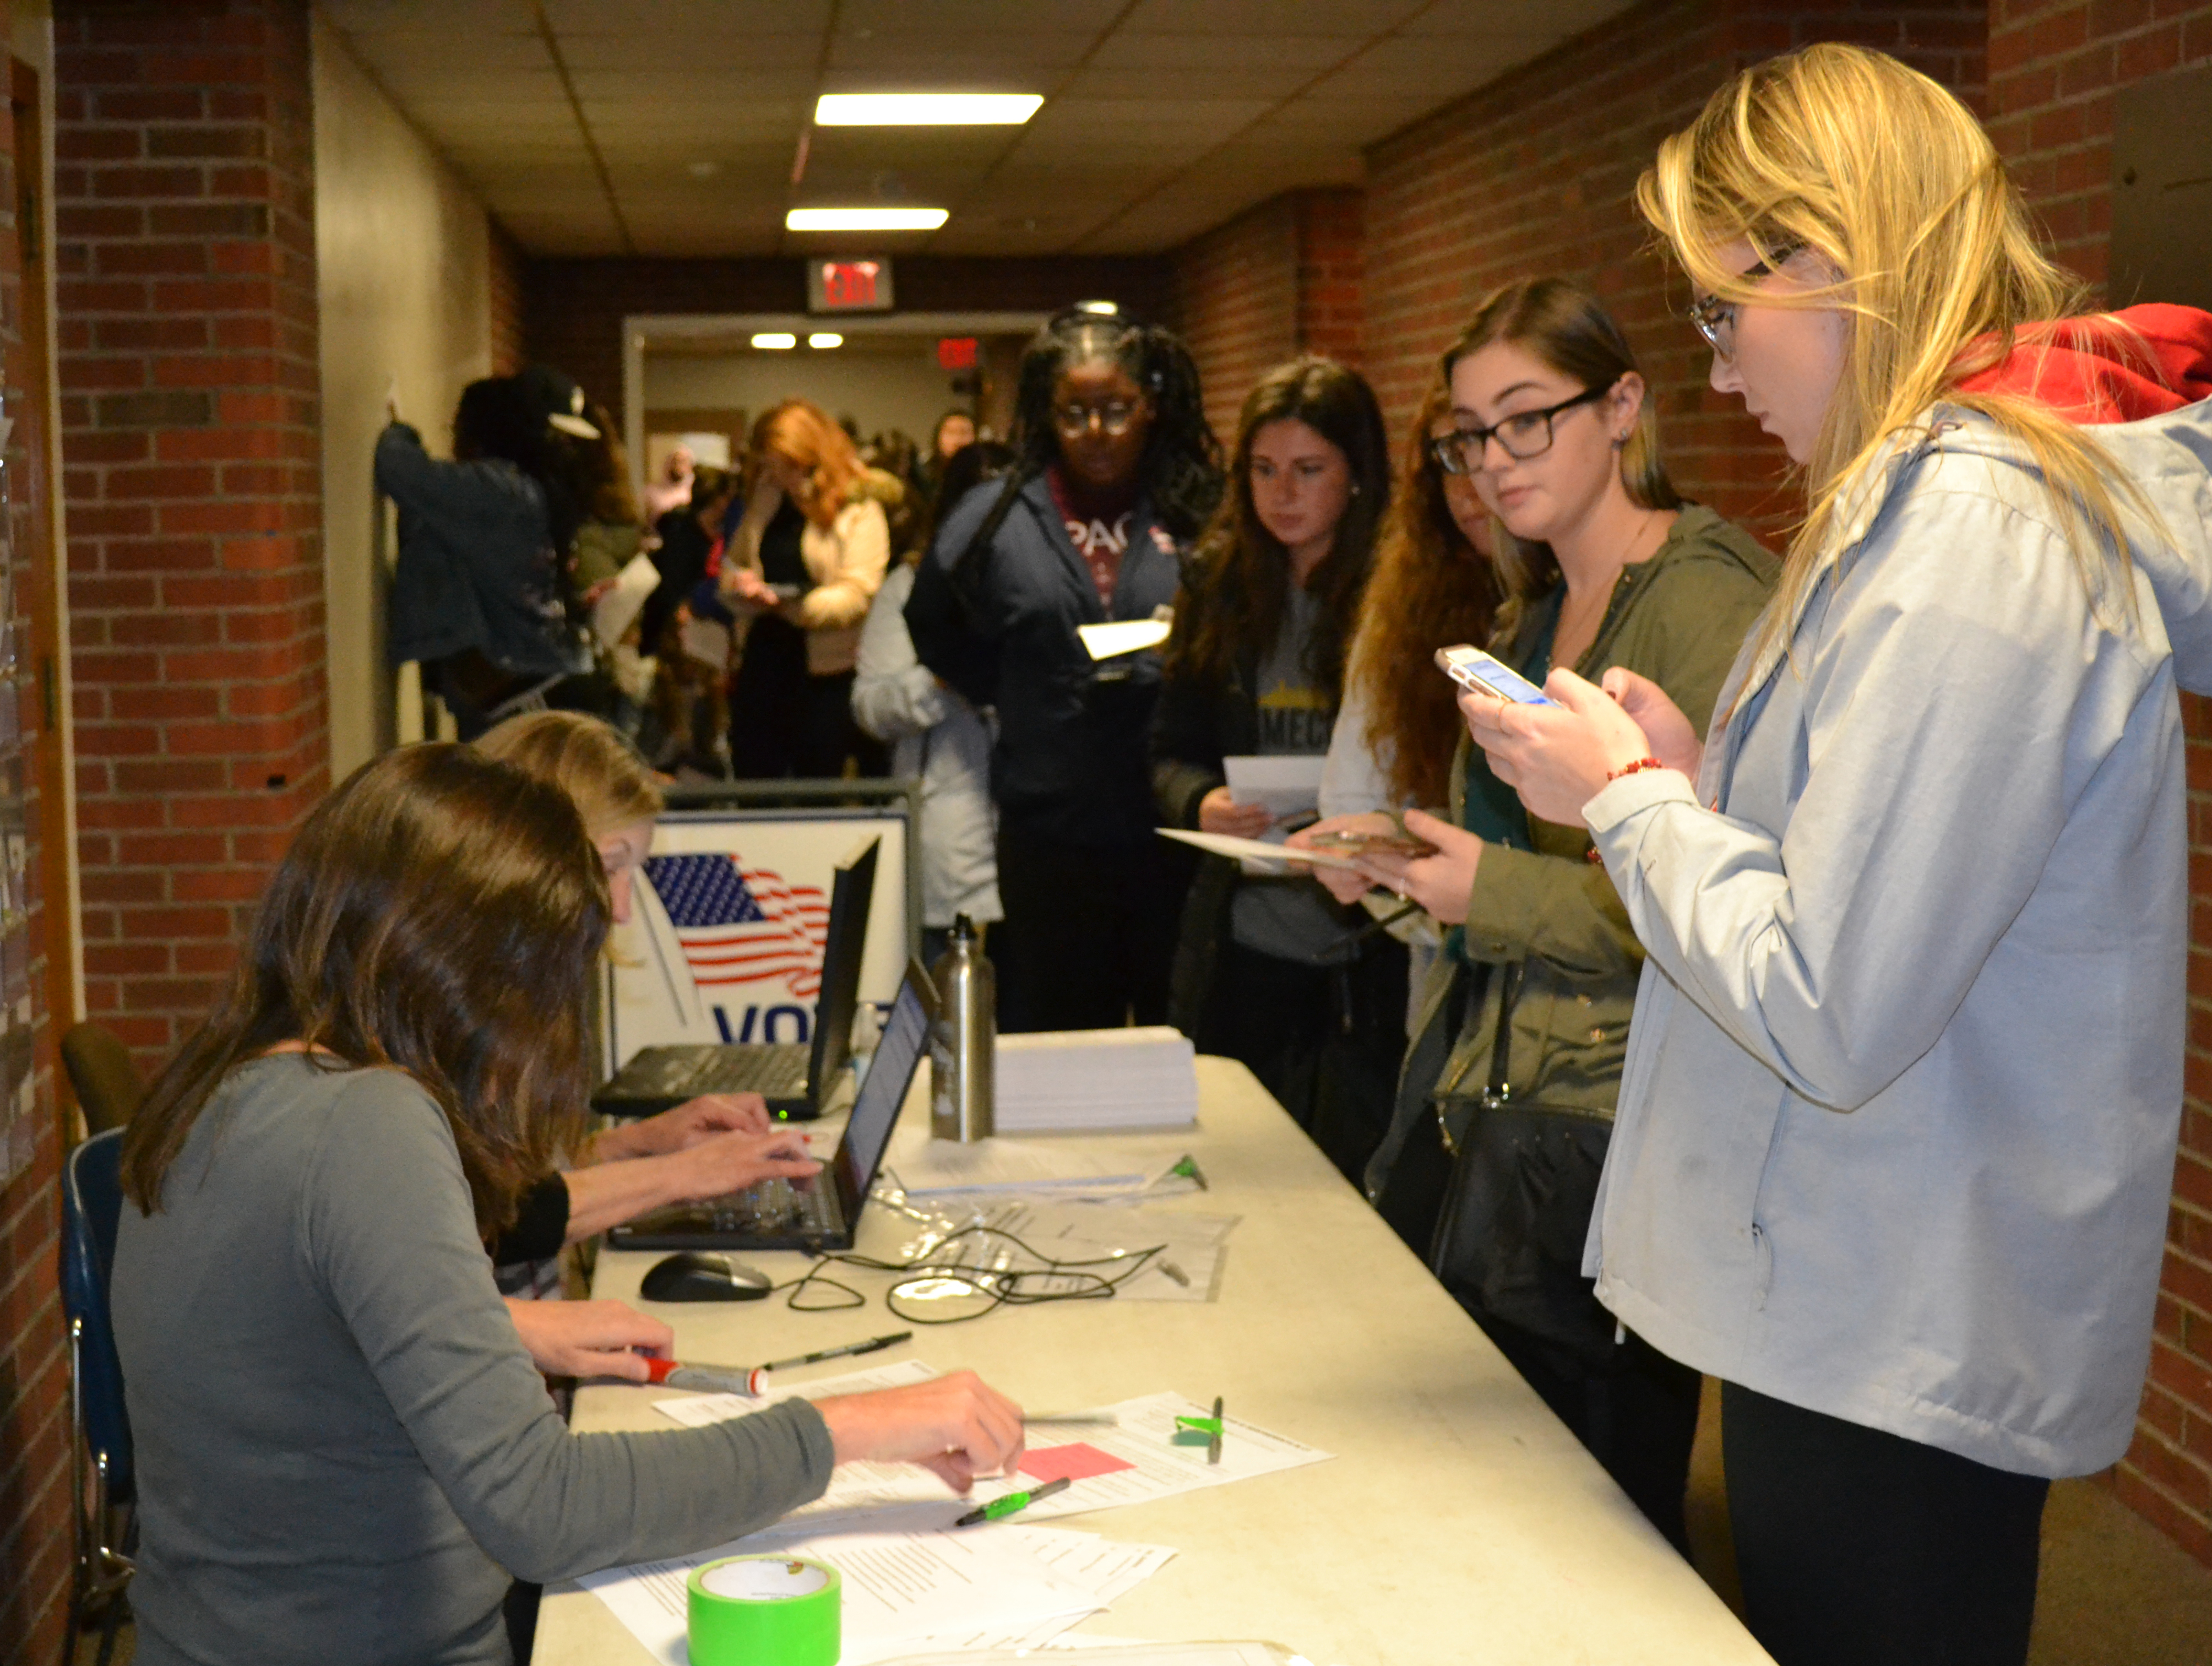 Crowds, humidity, aging machines were problems at the polls